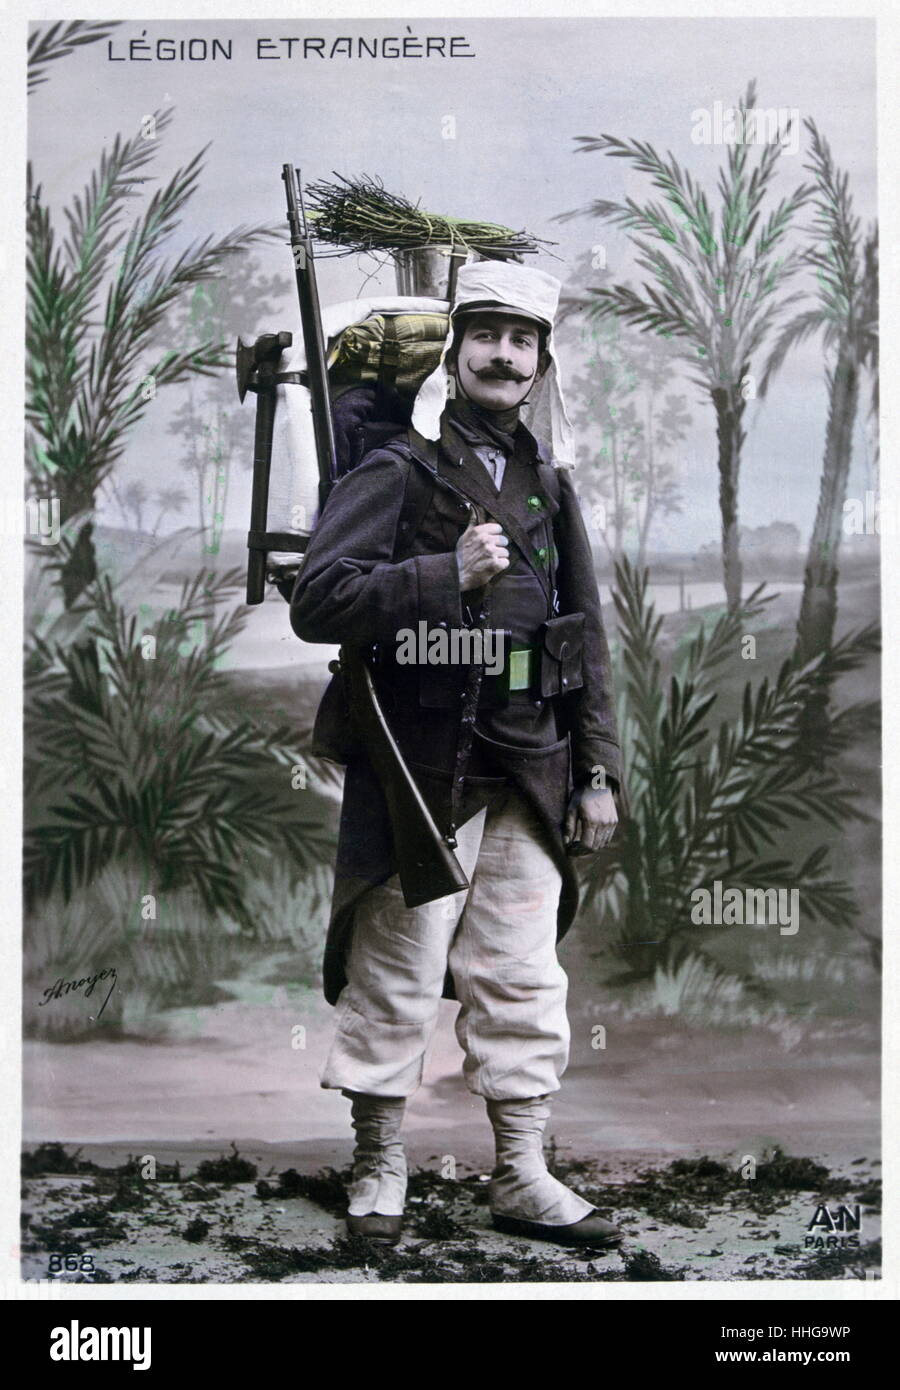 French Foreign Legion, soldier, Algeria, 1910 - Stock Image